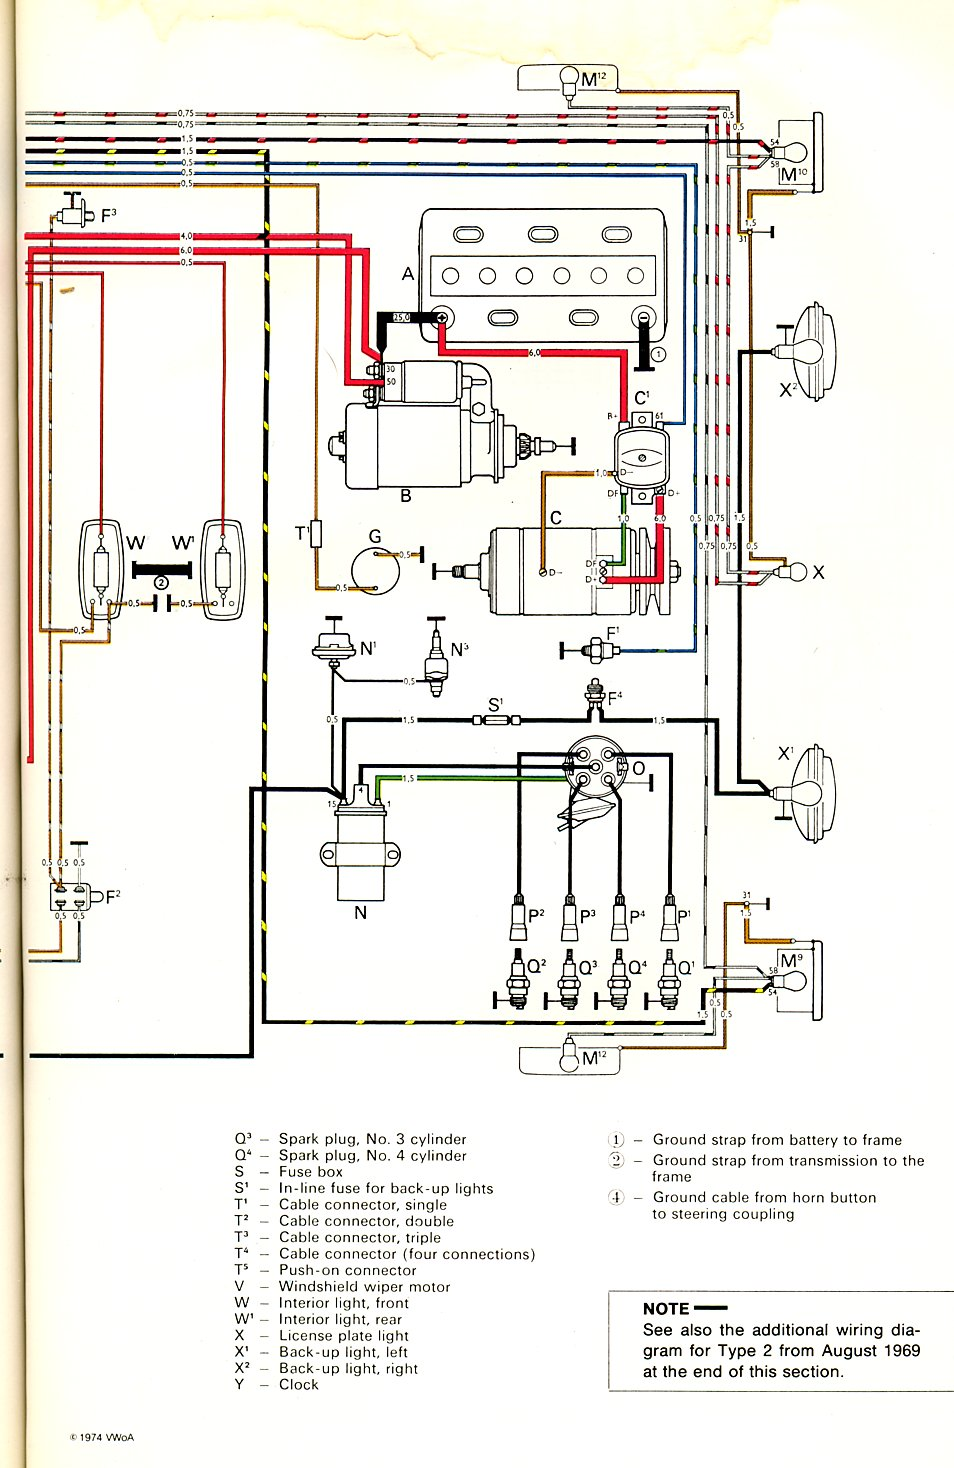 Baybus B on volkswagen 2002 beetle wiring diagram